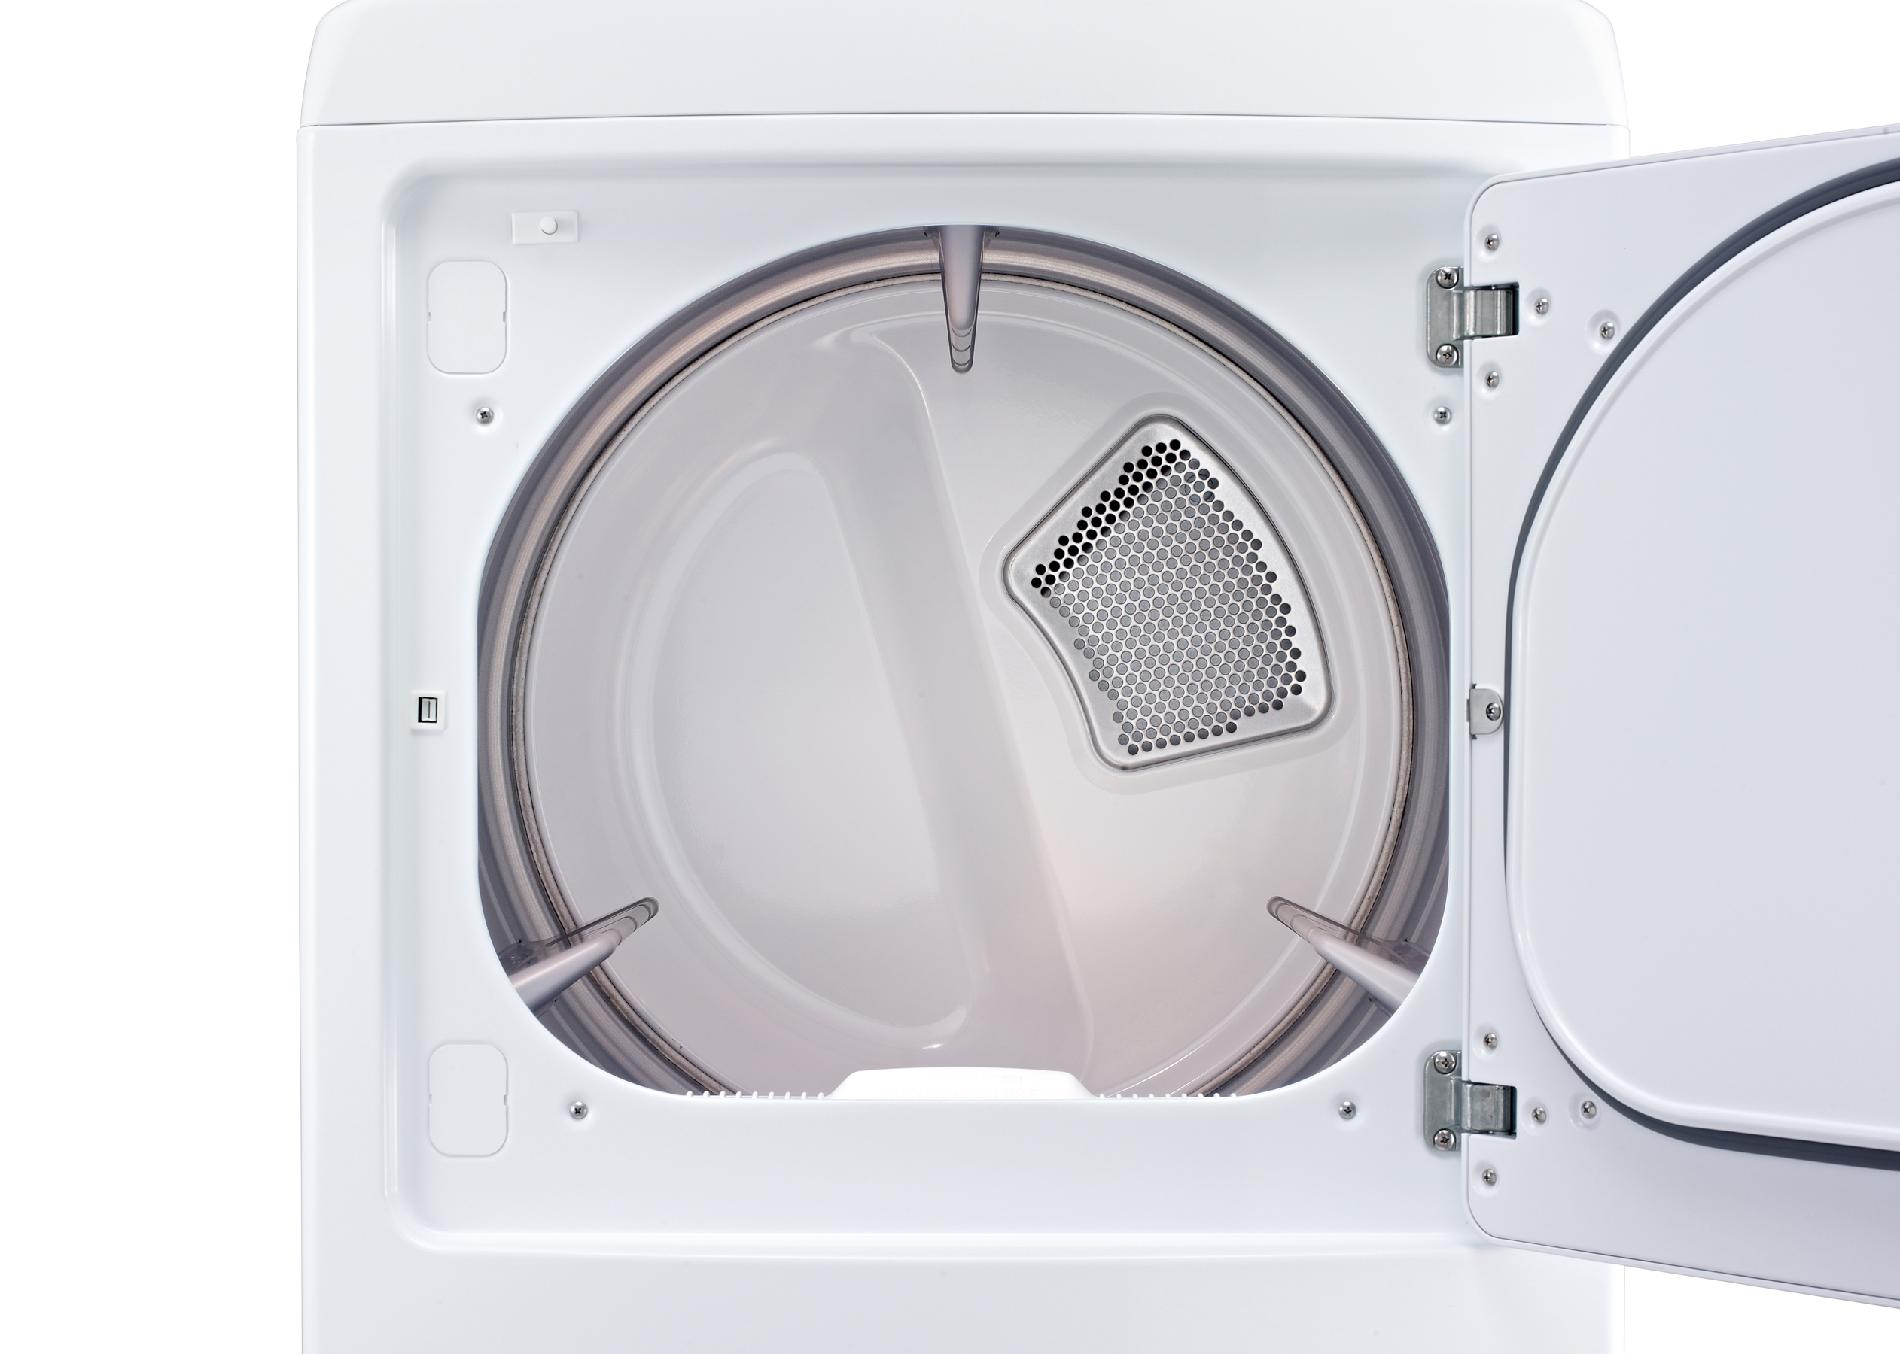 LG 7.3 cu. ft. Ultra-Large Capacity Front Control Gas Dryer w/ Sensor Dry - White